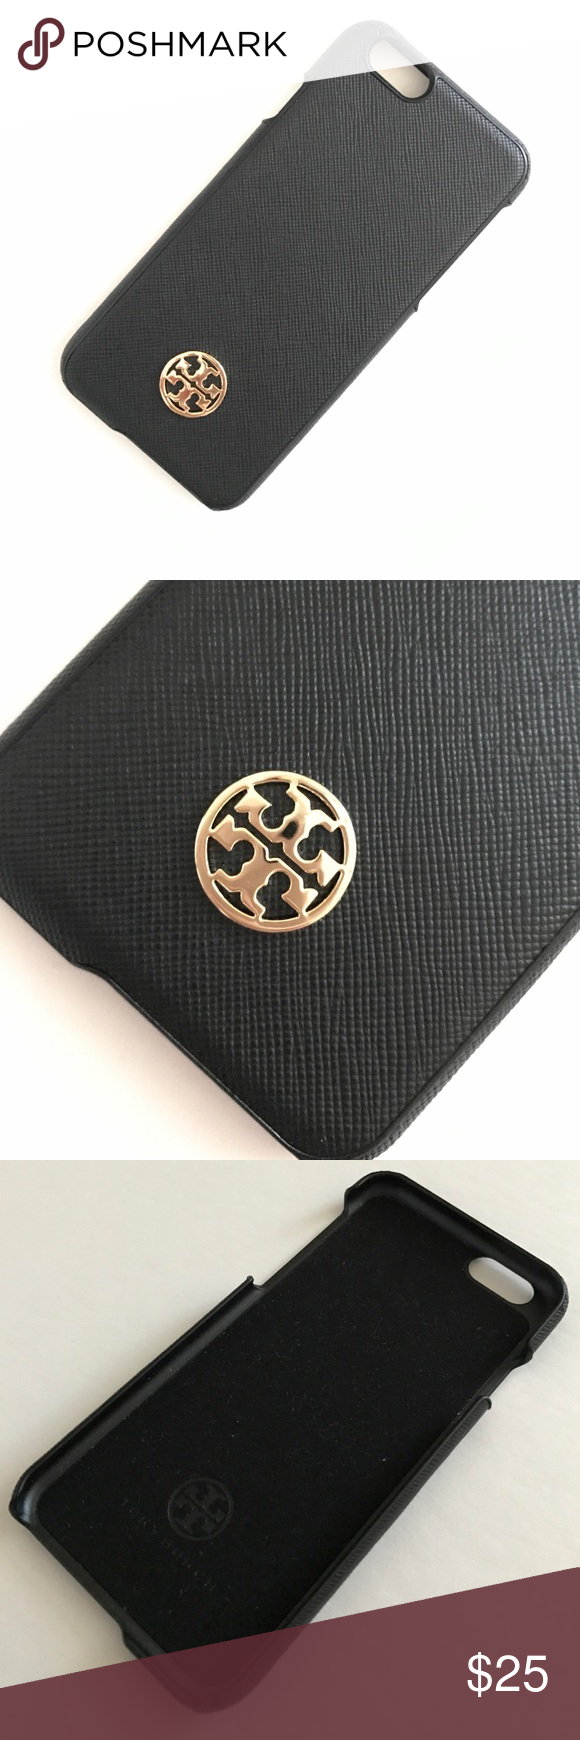 Tory Burch Robinson Saffiano Leather iPhone 6 case Like new! Only used less than one week. Hard case with fuzzy inside to protect the phone. Chic case! Wish I could use it but it does not fit my phone anymore. Tory Burch Accessories Phone Cases